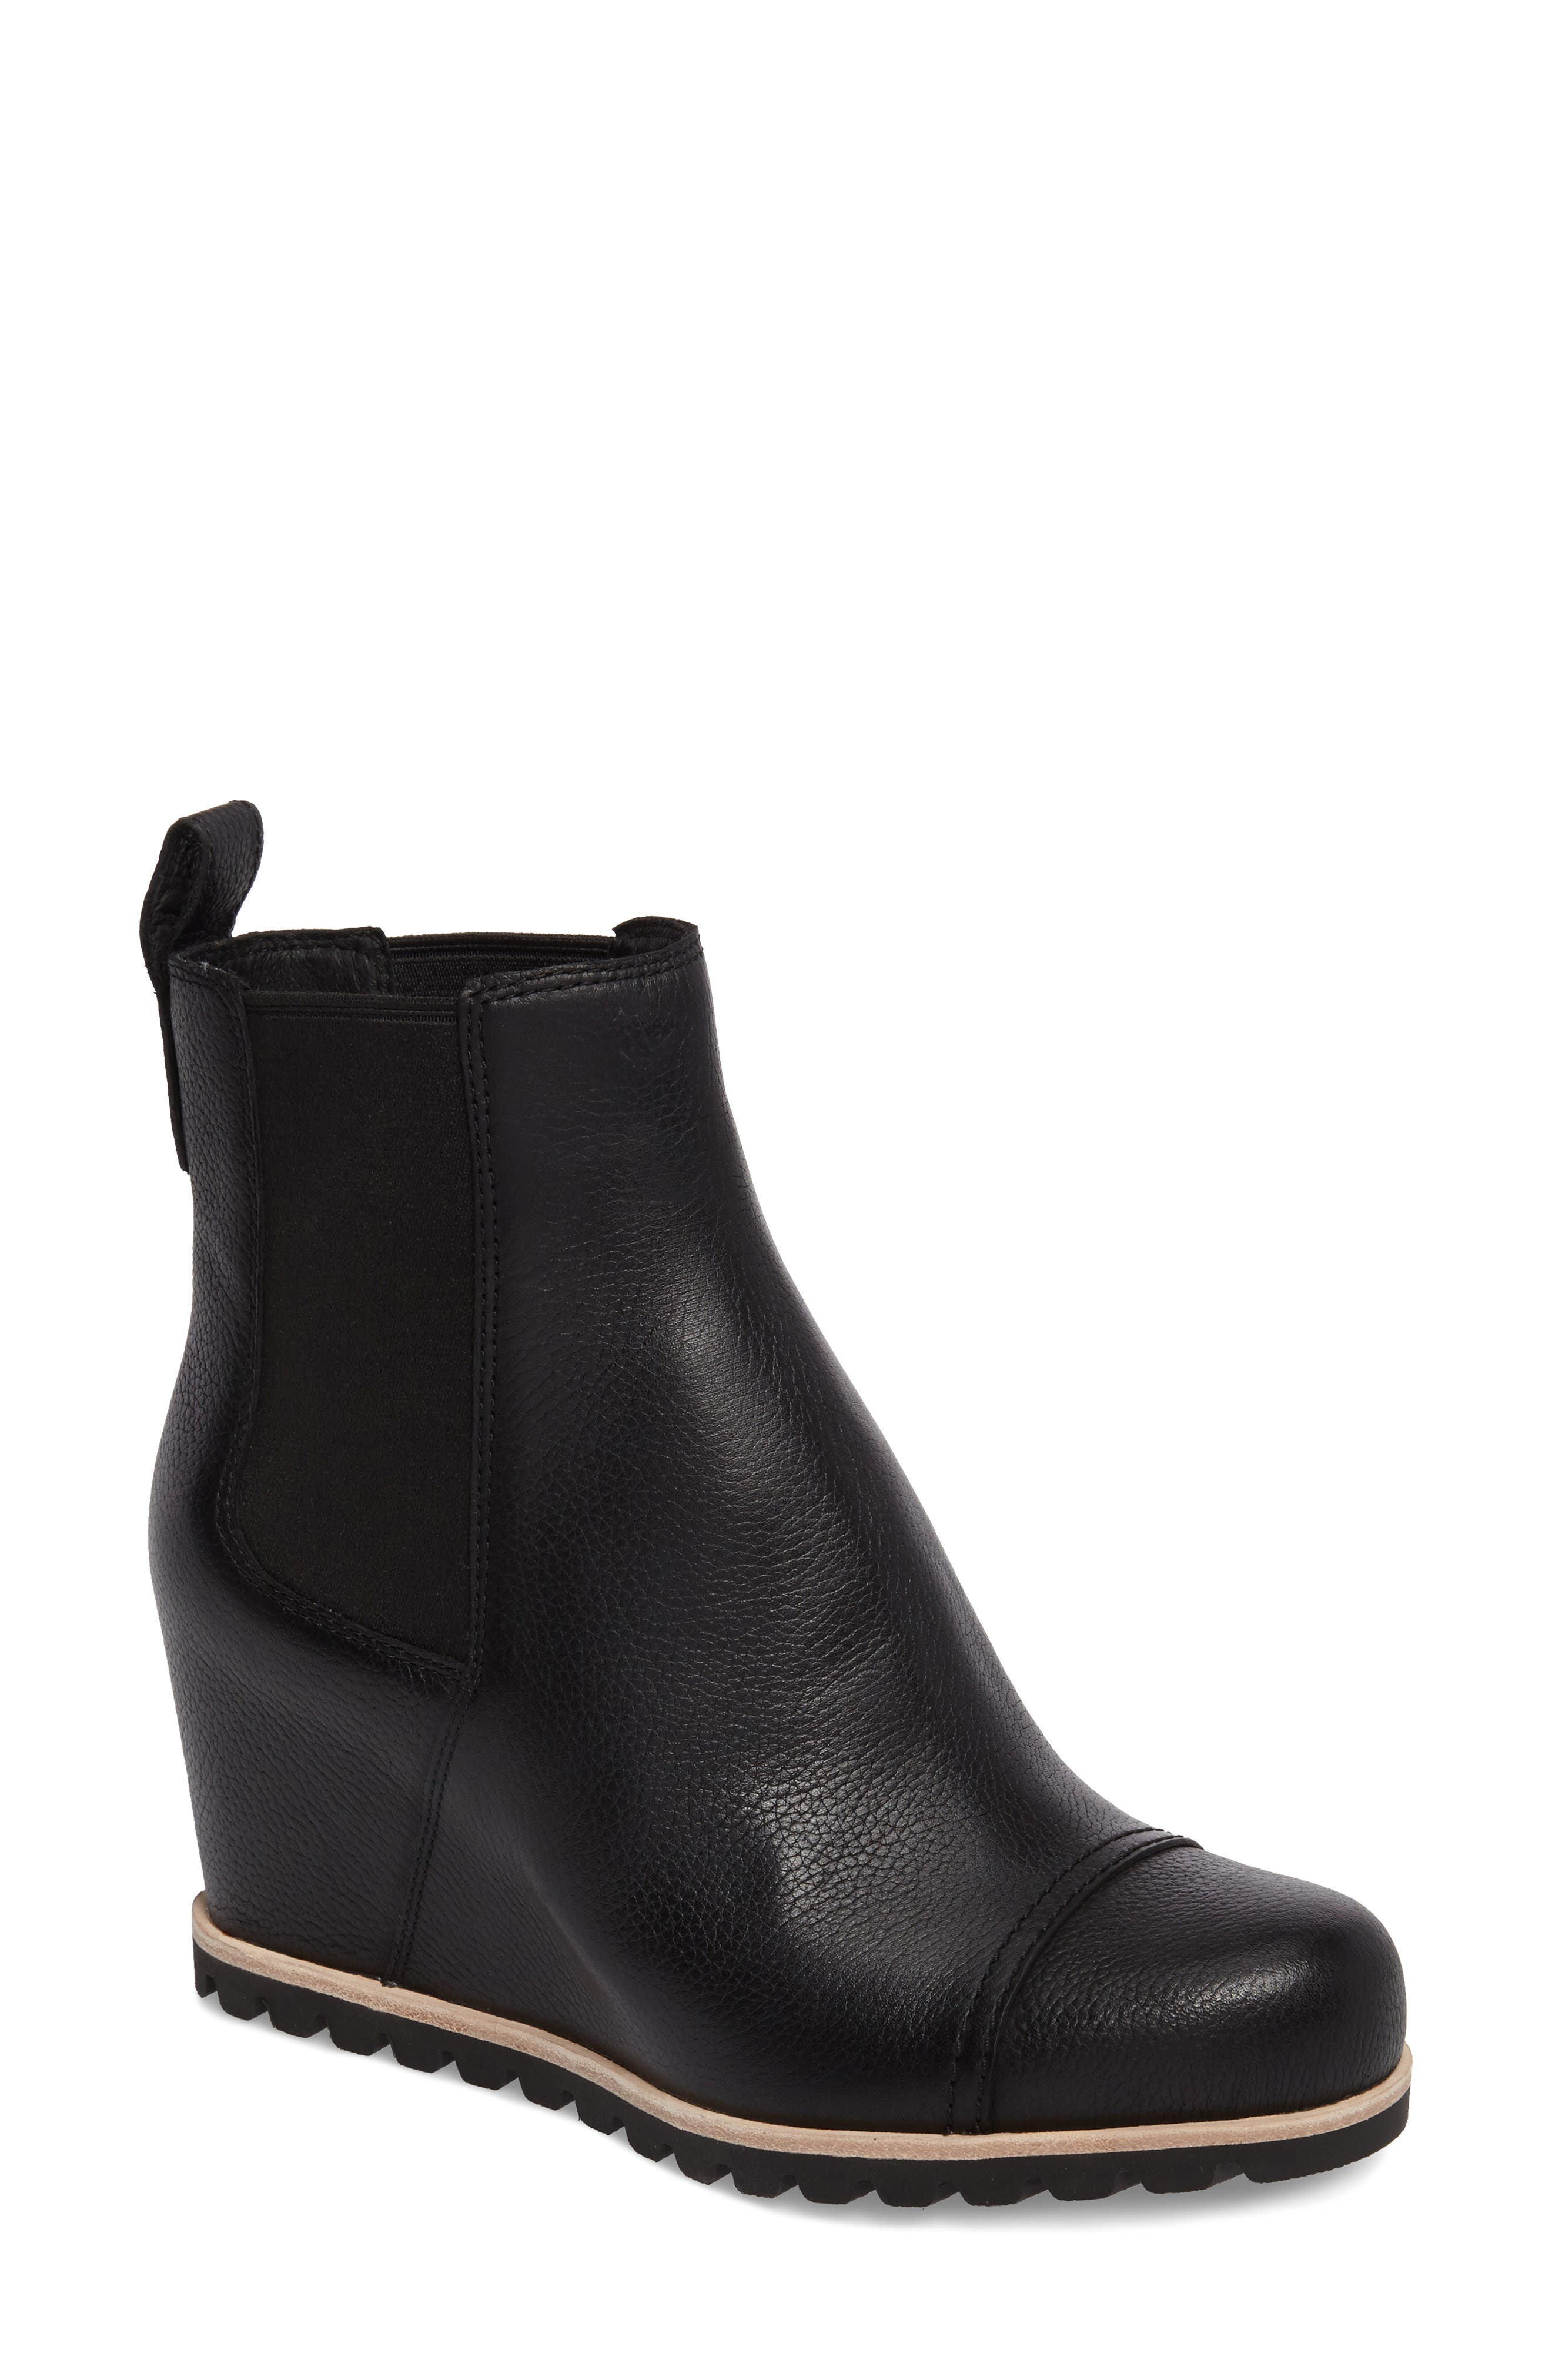 Pax Waterproof Wedge Boot,                         Main,                         color, Black Leather